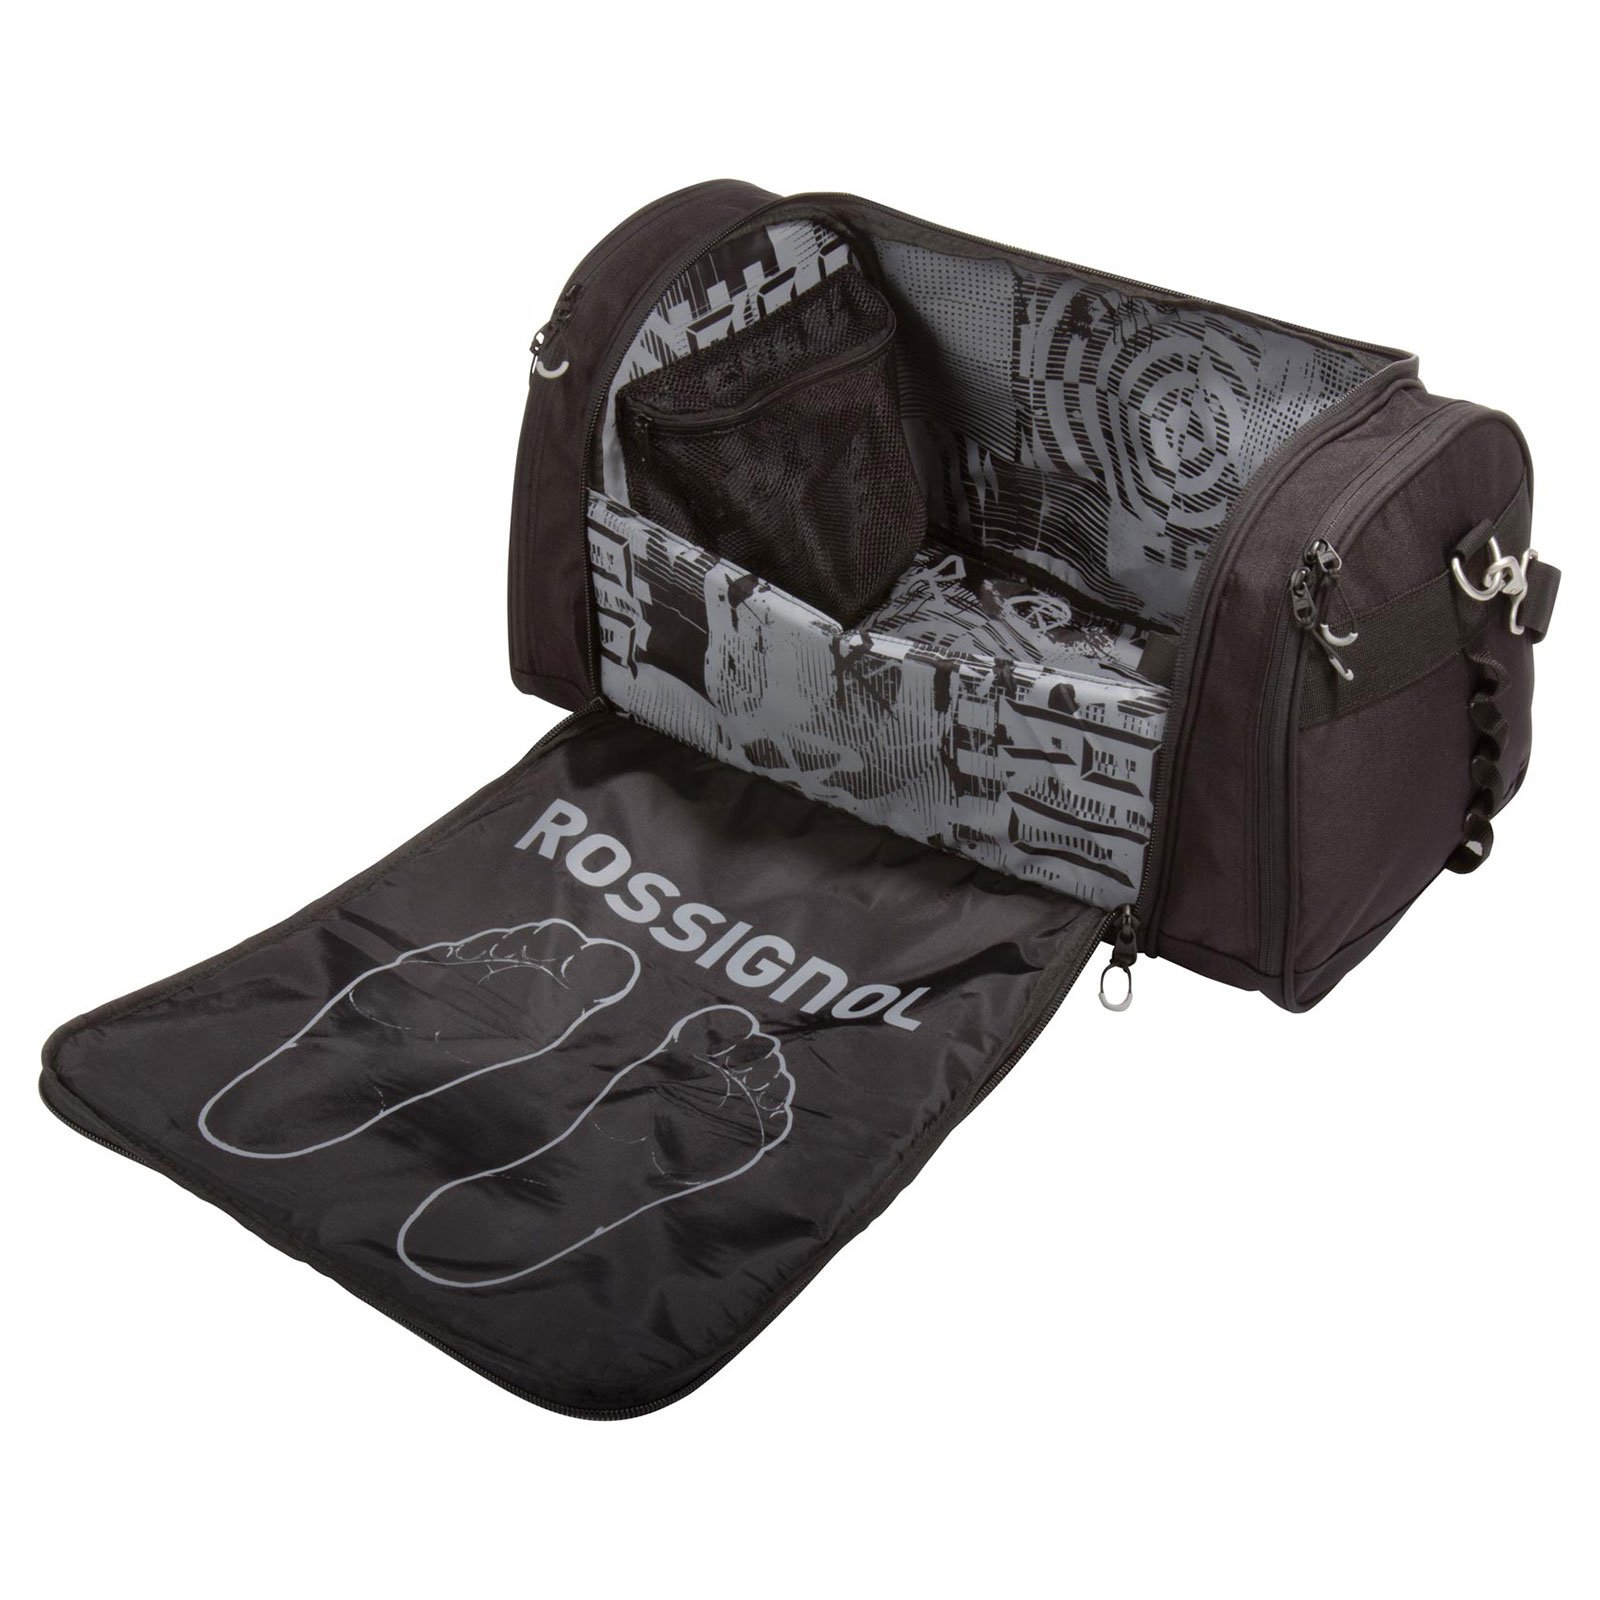 Rossignol Little Mudder Gear and Boot Bag Black